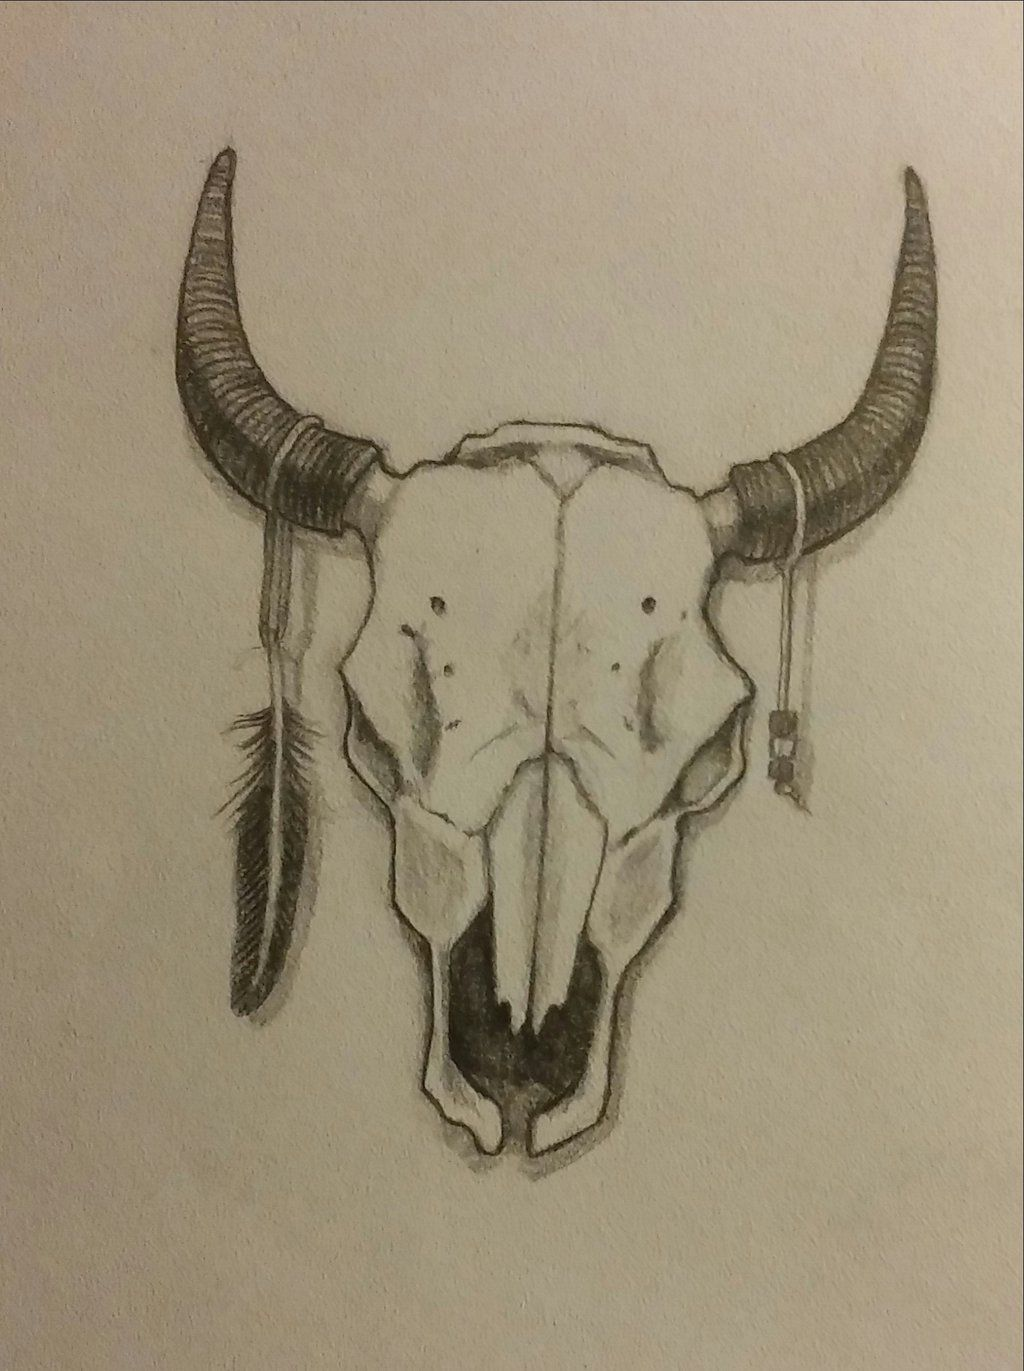 More Like Buffalo Skull Tattoo Design By Ockra Skull Tattoo Design Buffalo Skull Skull Tattoo